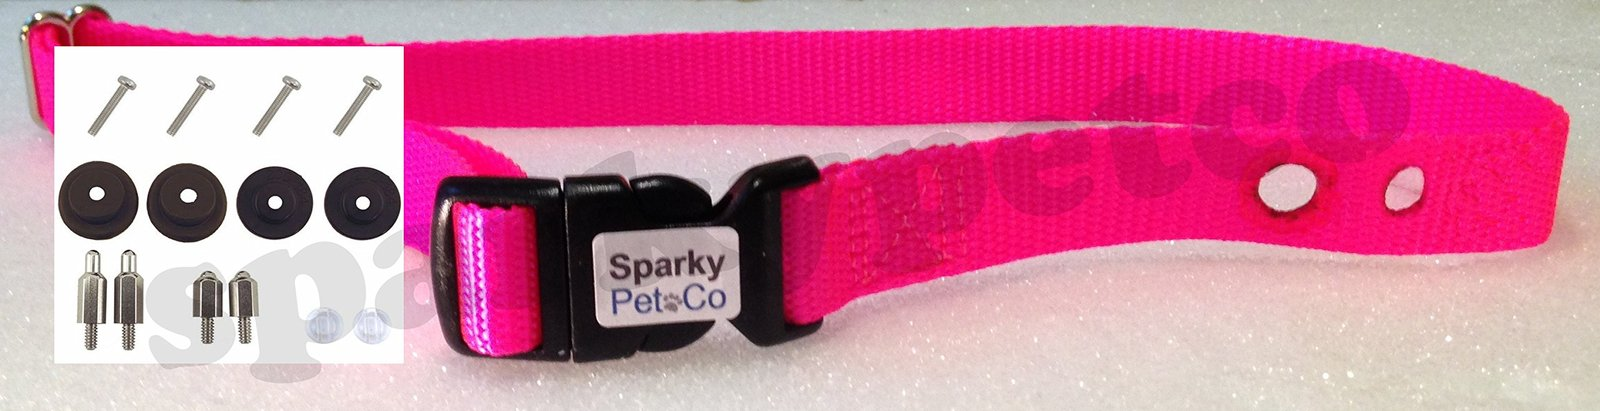 "Sparky PetCo PetSafe Compatible RFA-41 1"" Raspberry Pink Color Dog Replacemen..."